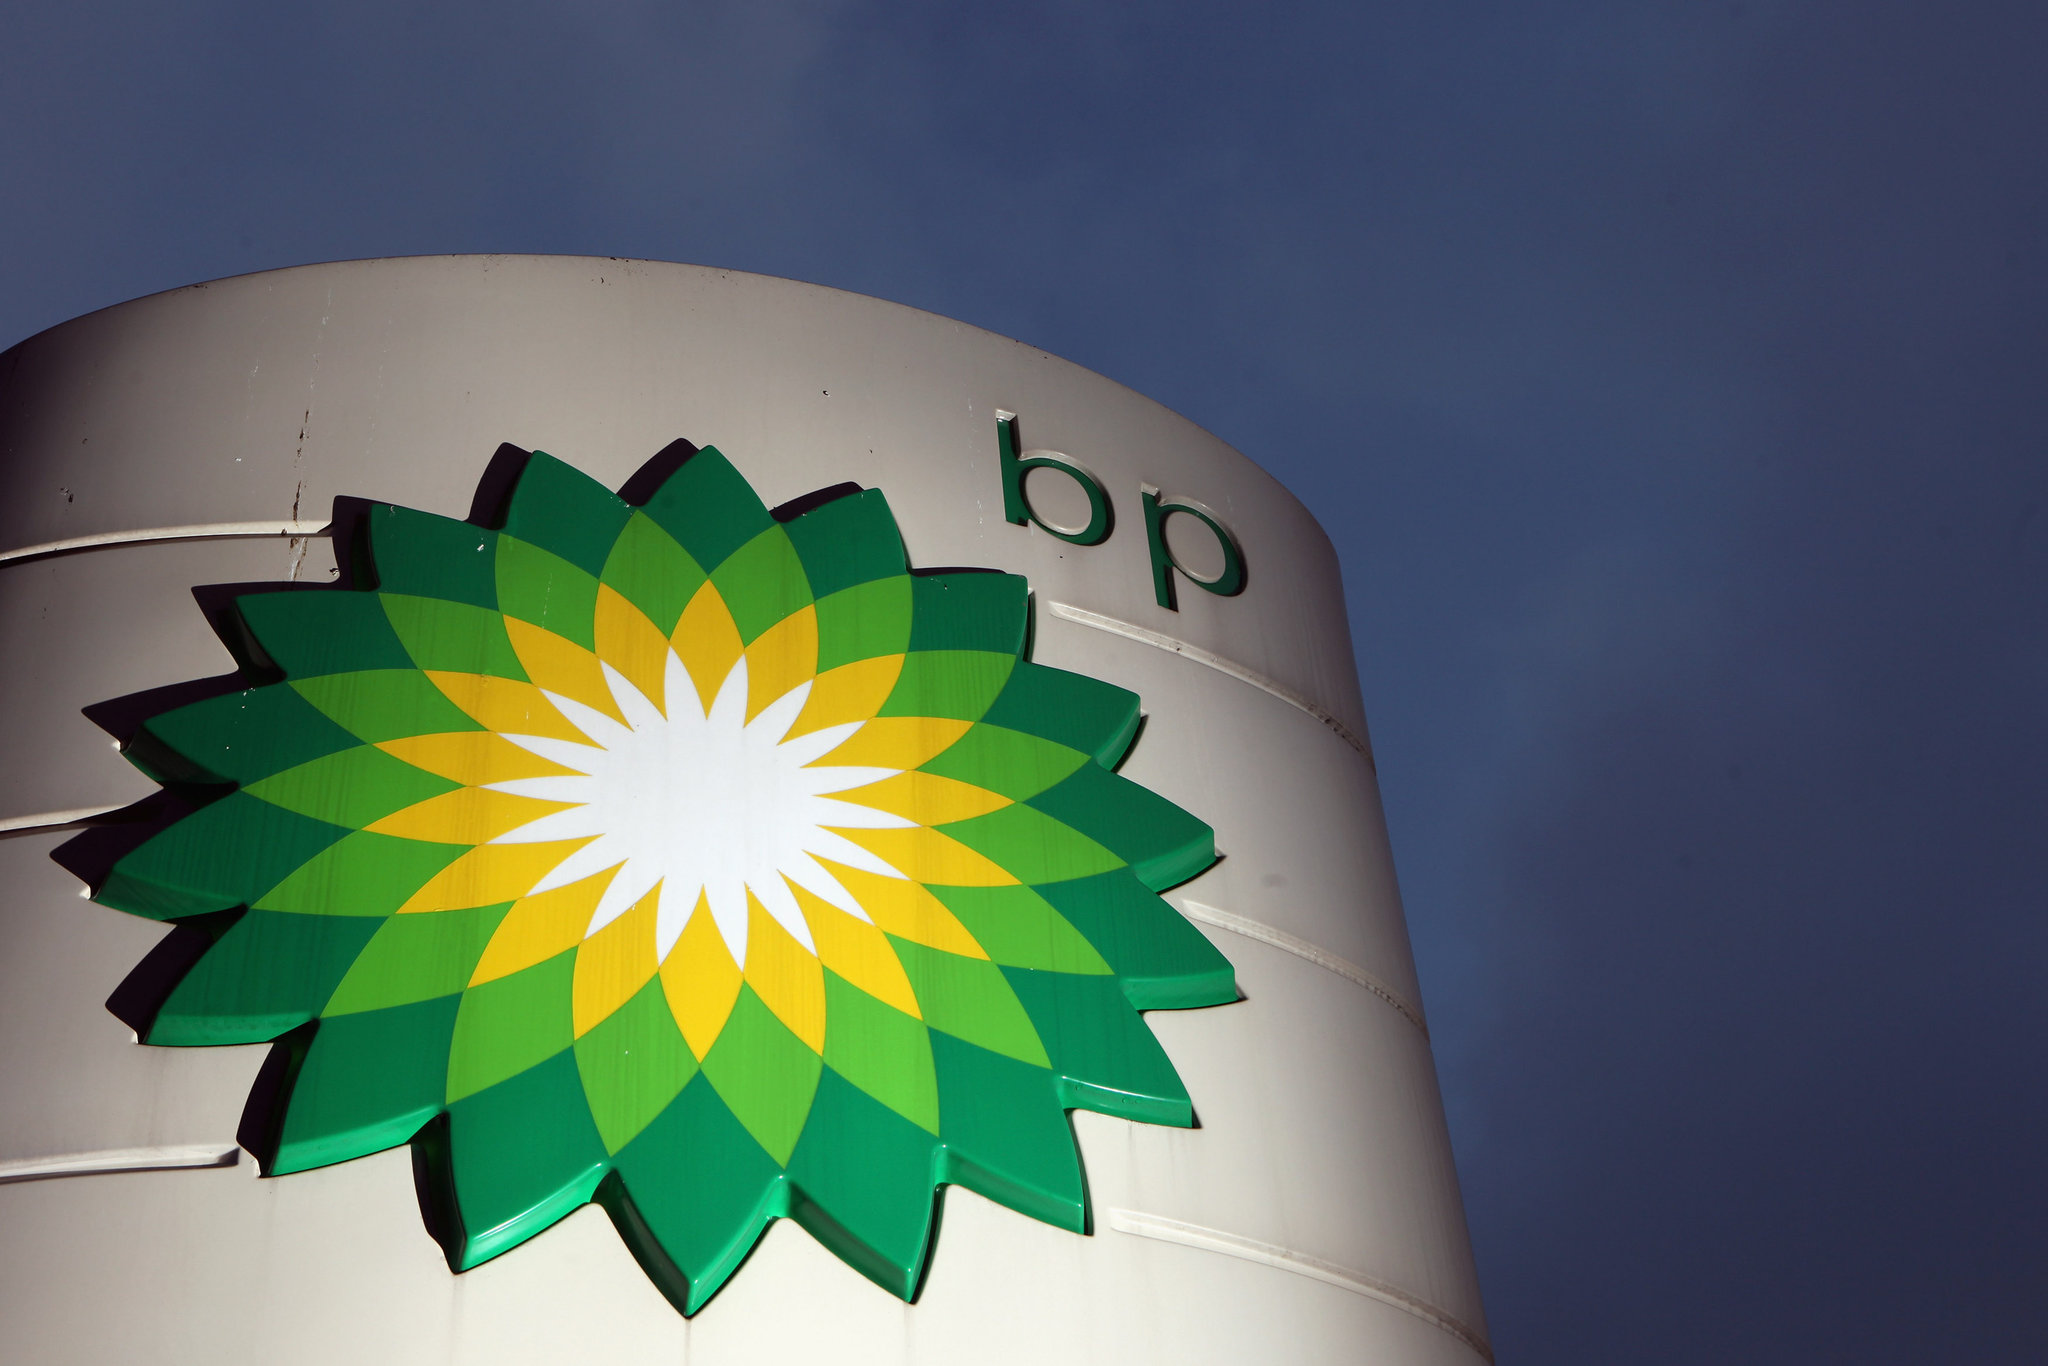 BP to Cut Oil and Gas Production 40%, Invest 10x More in Green Energy